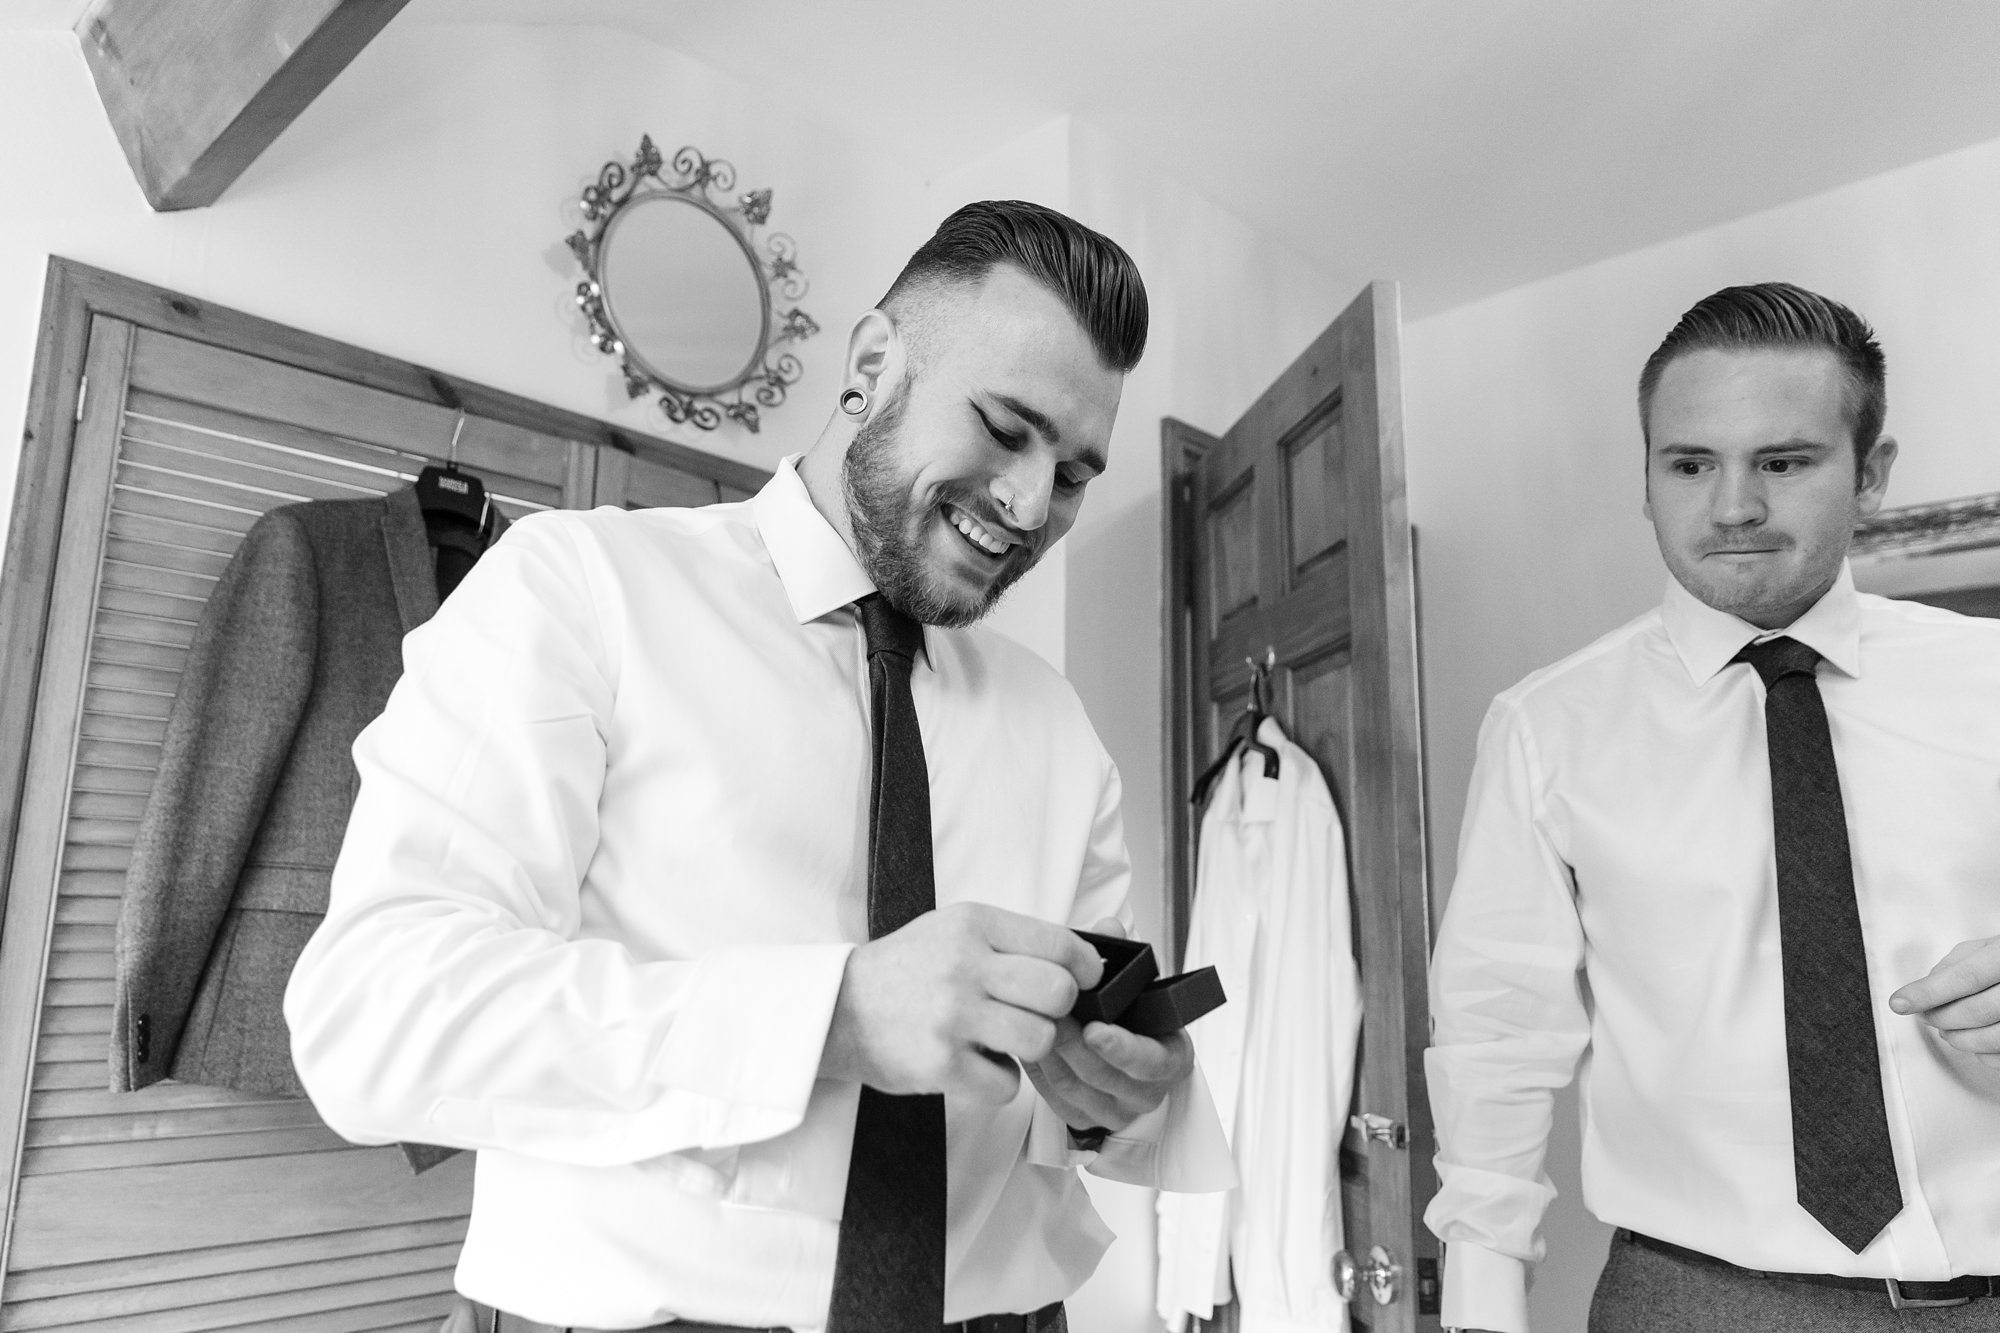 Groom with bald fade hair style smiles as he opens a gift